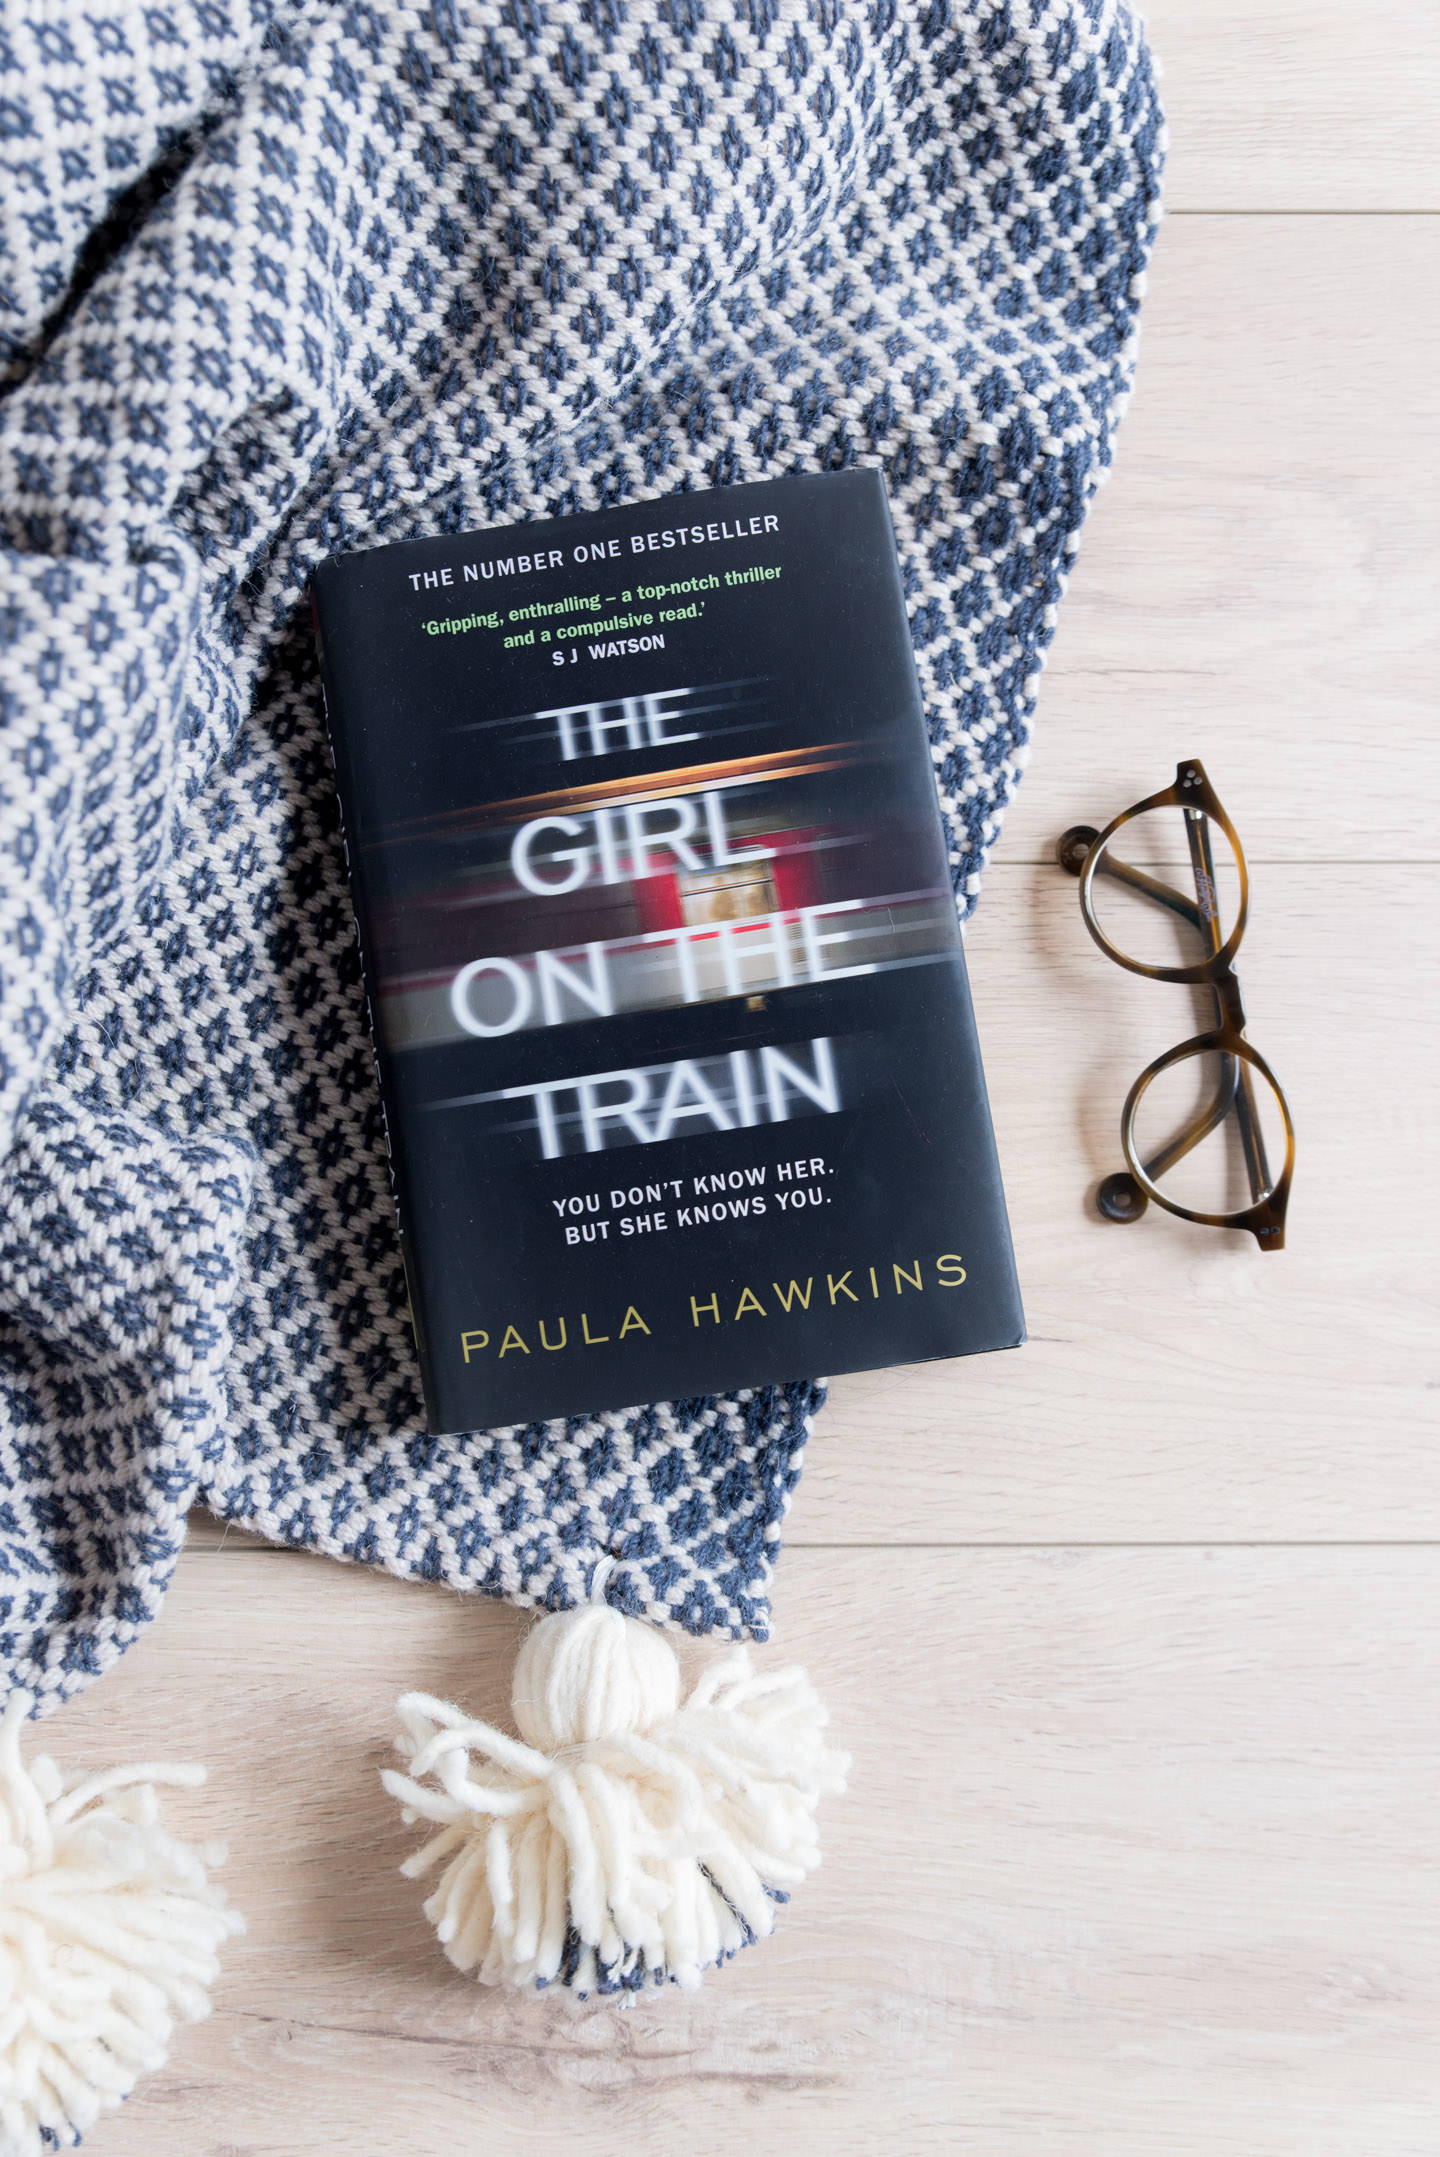 Blog-Mode-And-The-City-Lifestyle-Cinq-Petites-Choses-182-The-Girl-On-The-train